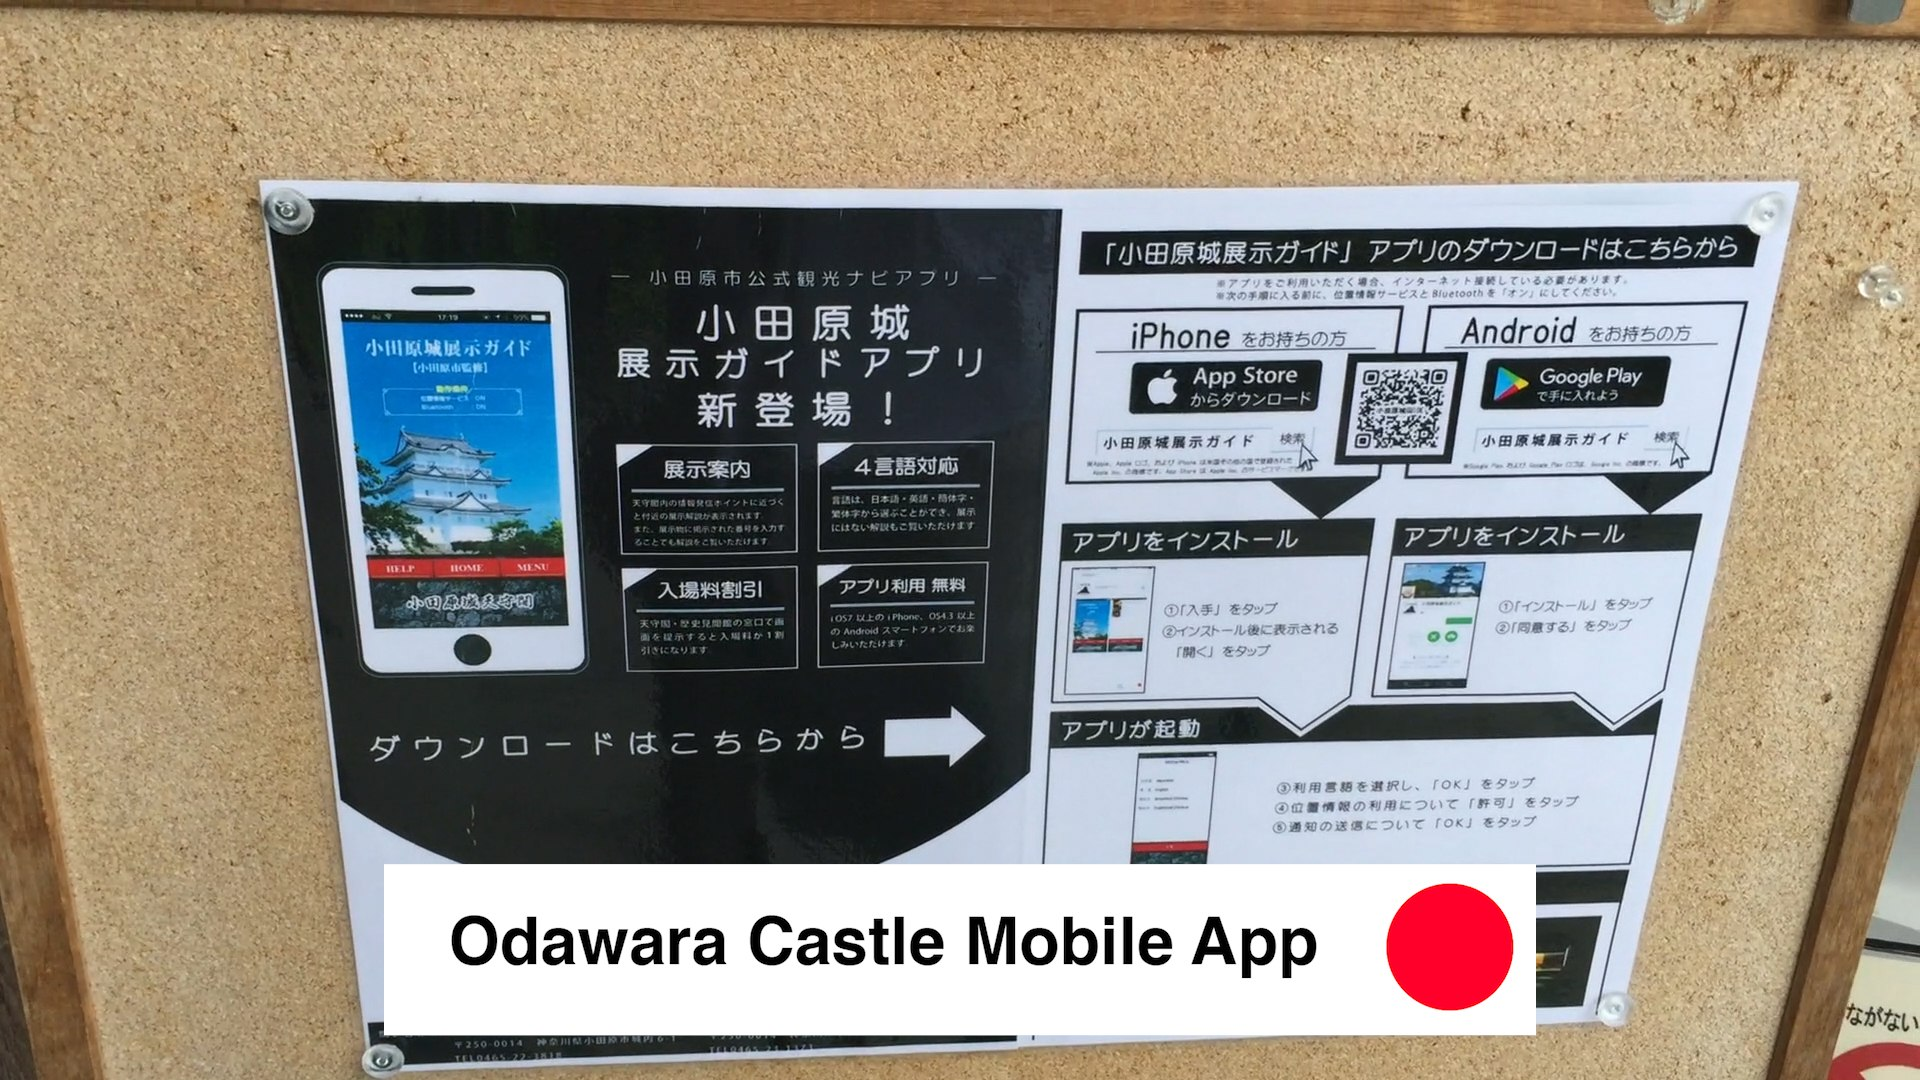 Odawara Castle Mobile App - Odawara Castle Japan Guide Review Video - 9 Reasons To See Odawara Castle Kanagawa Japan 🇯🇵 🏯 🌸